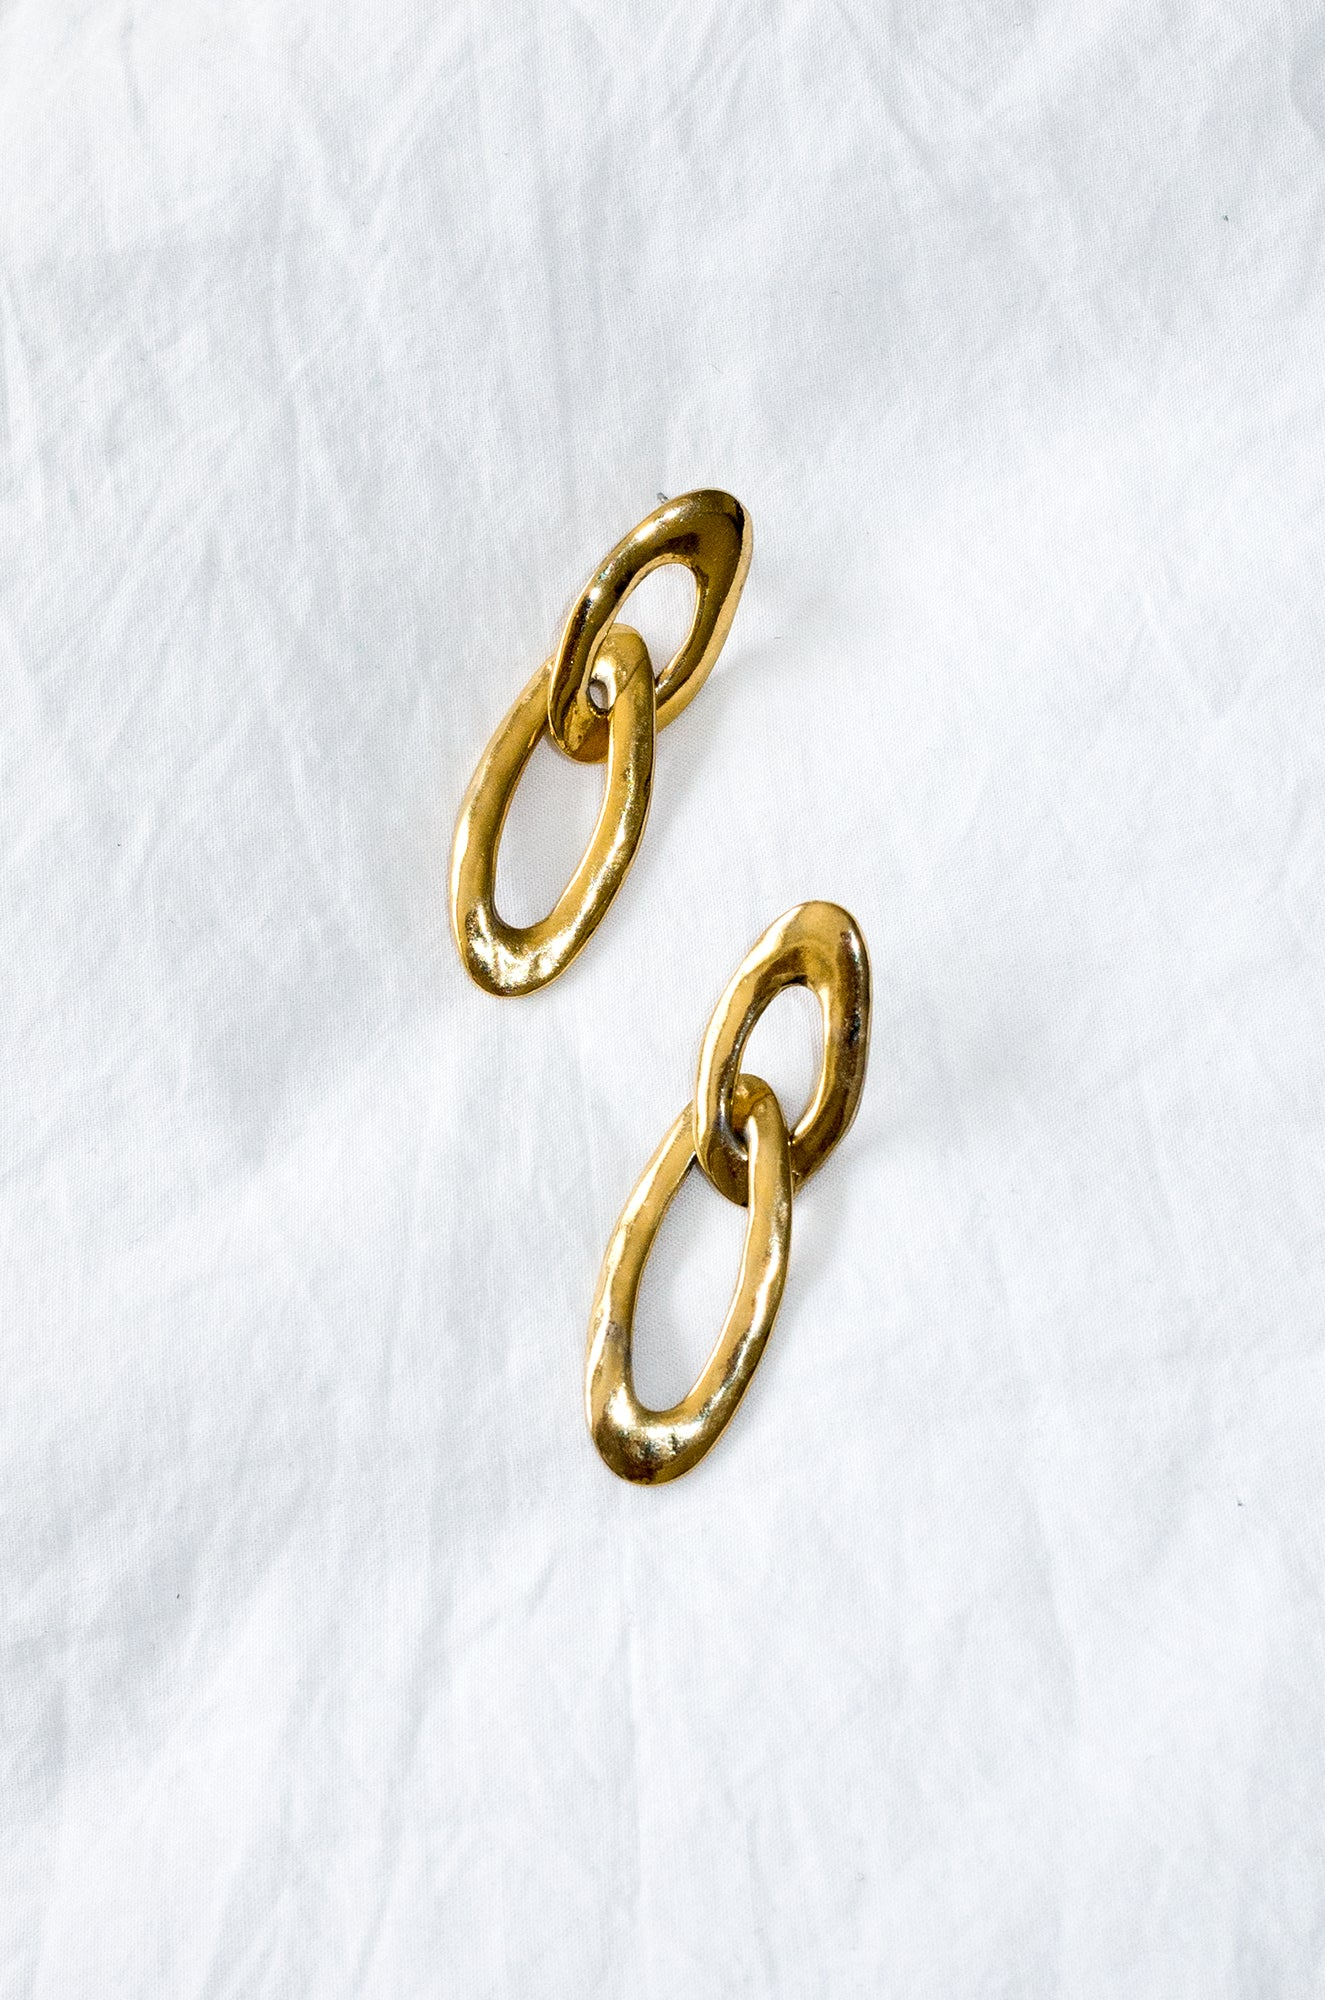 Vintage 1980s gold-tone earrings. Hammered effect.